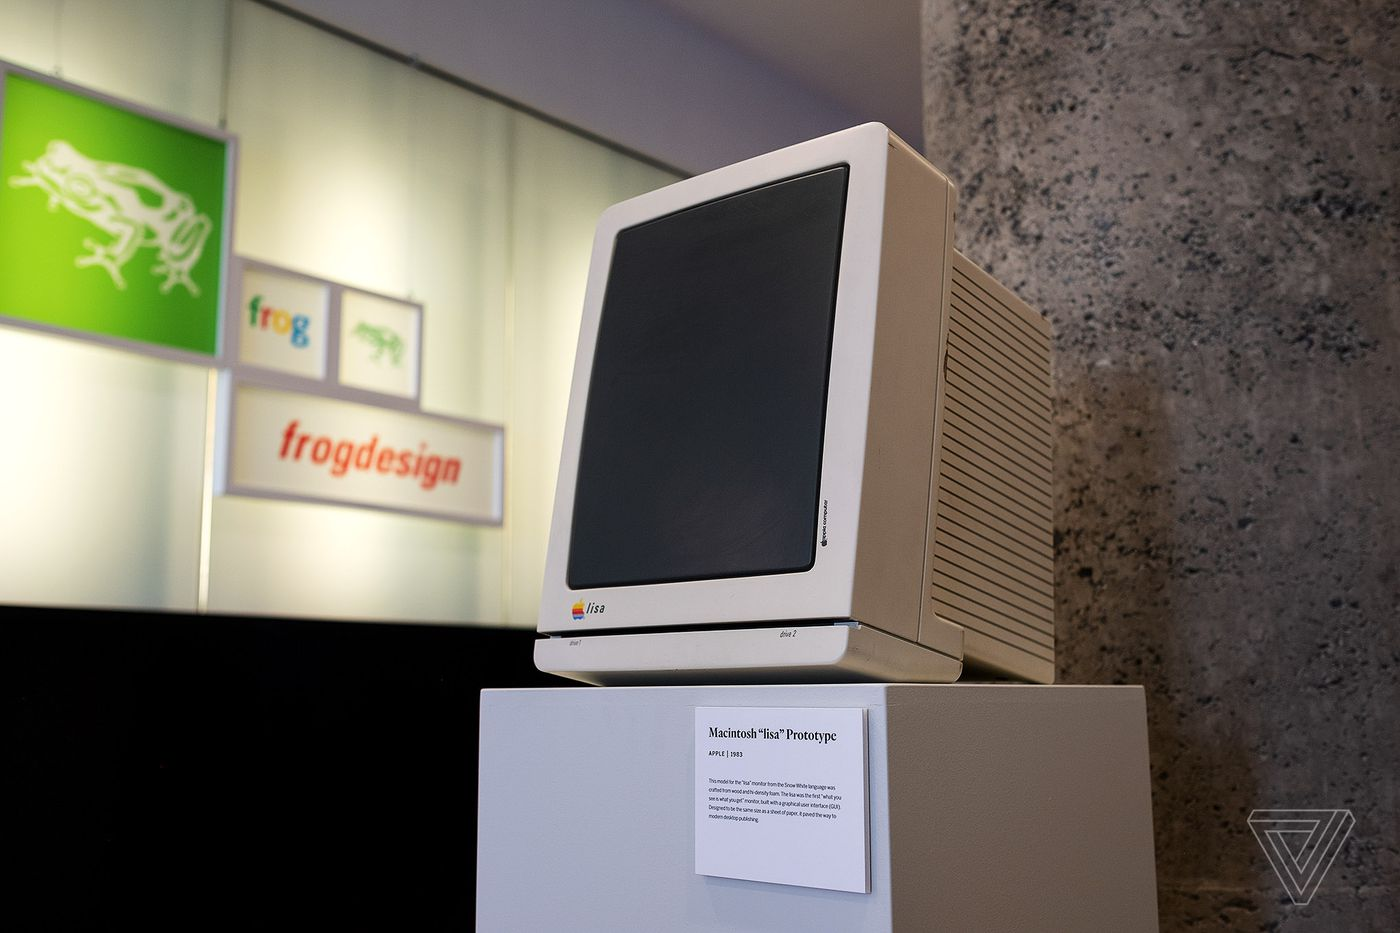 300a3299aac A photo history of Frog, the company that designed the original Mac - The  Verge